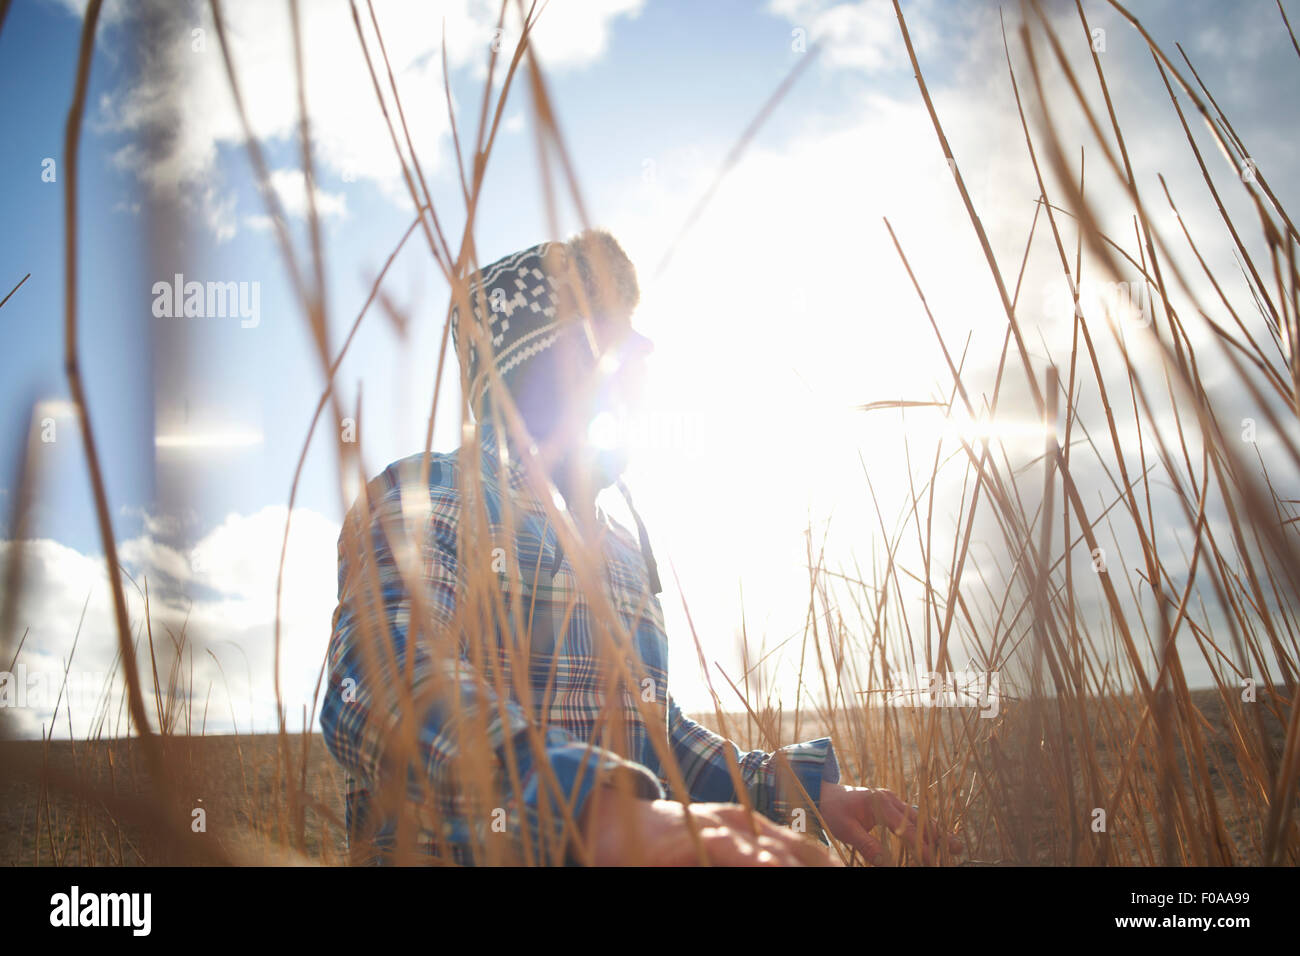 Mature man looking out from sunlit reeds - Stock Image